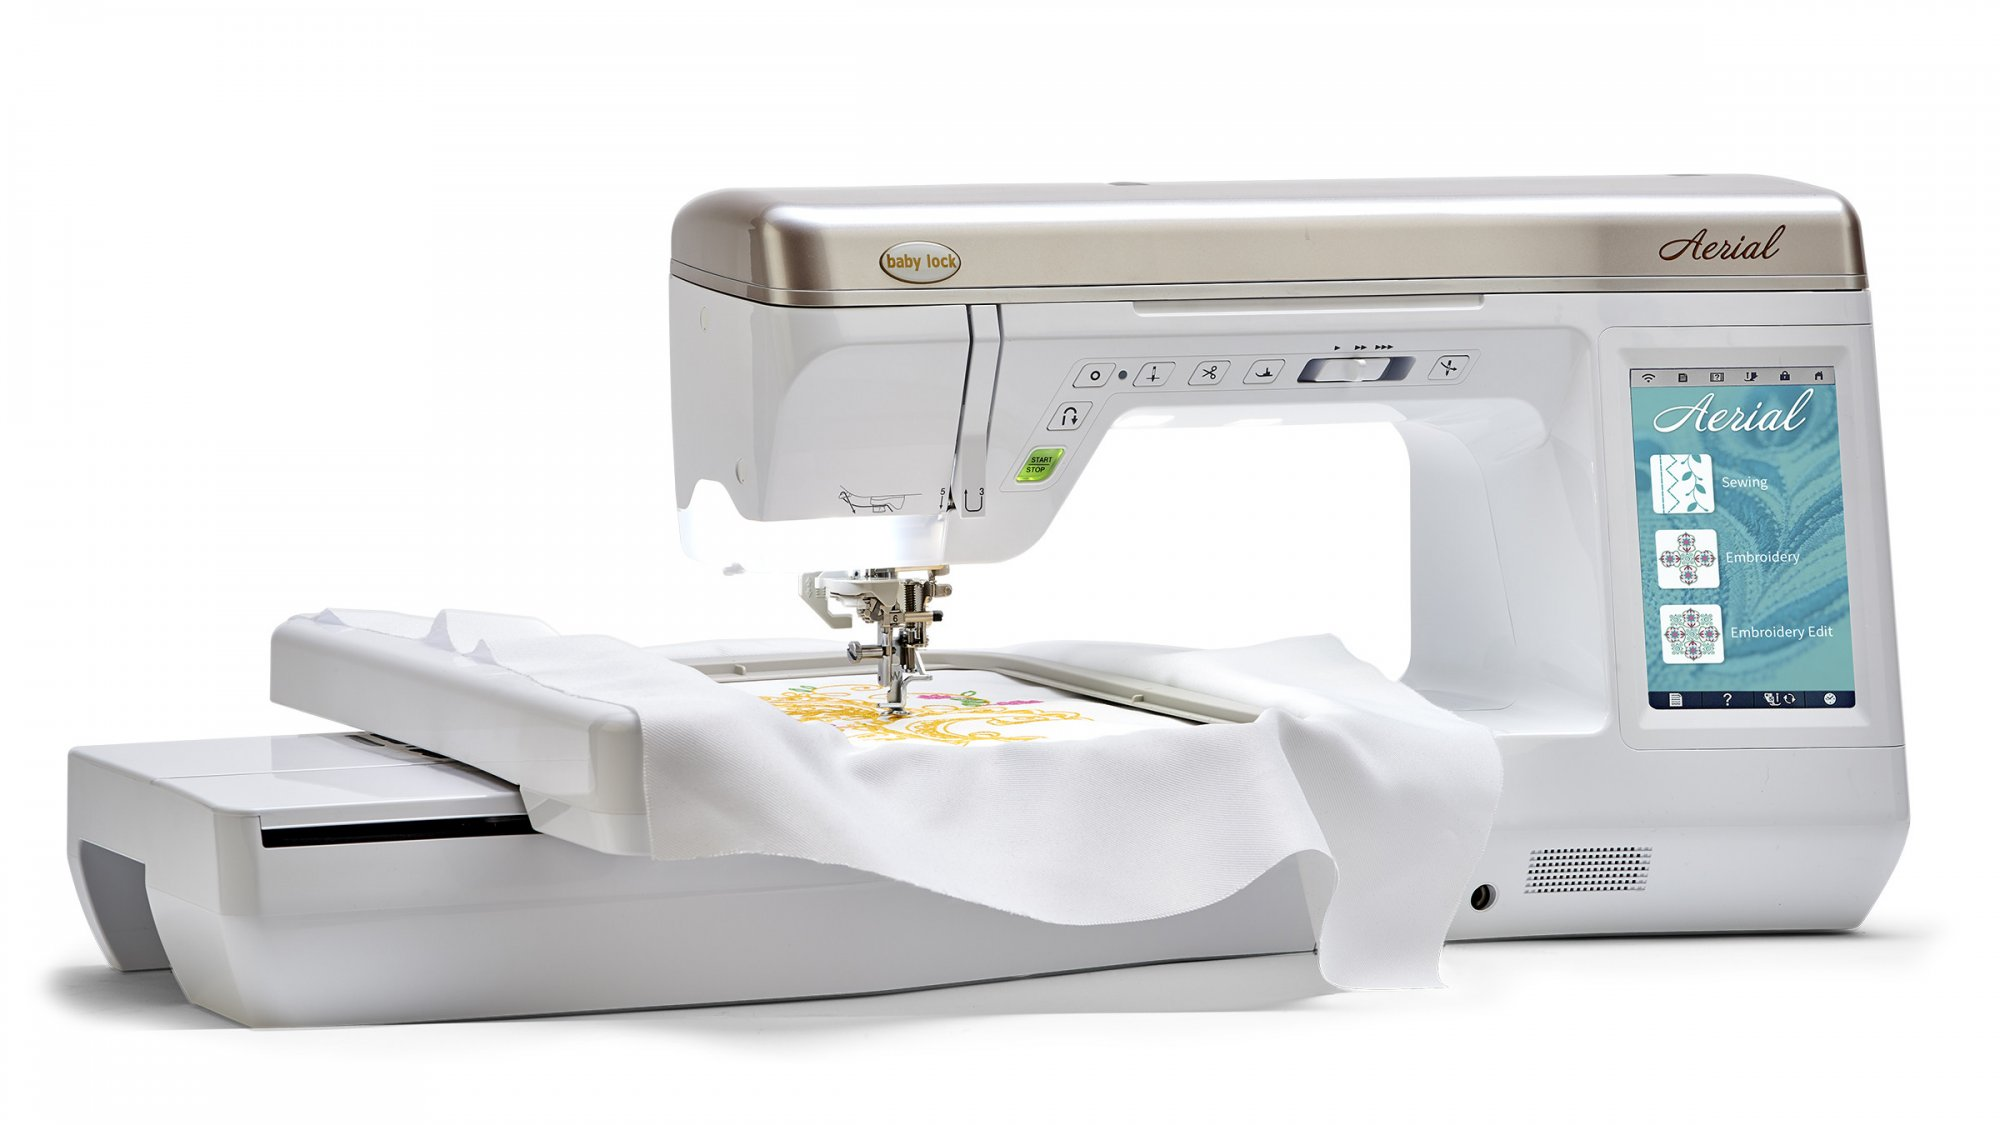 BL - Aerial Sewing & Embroidery